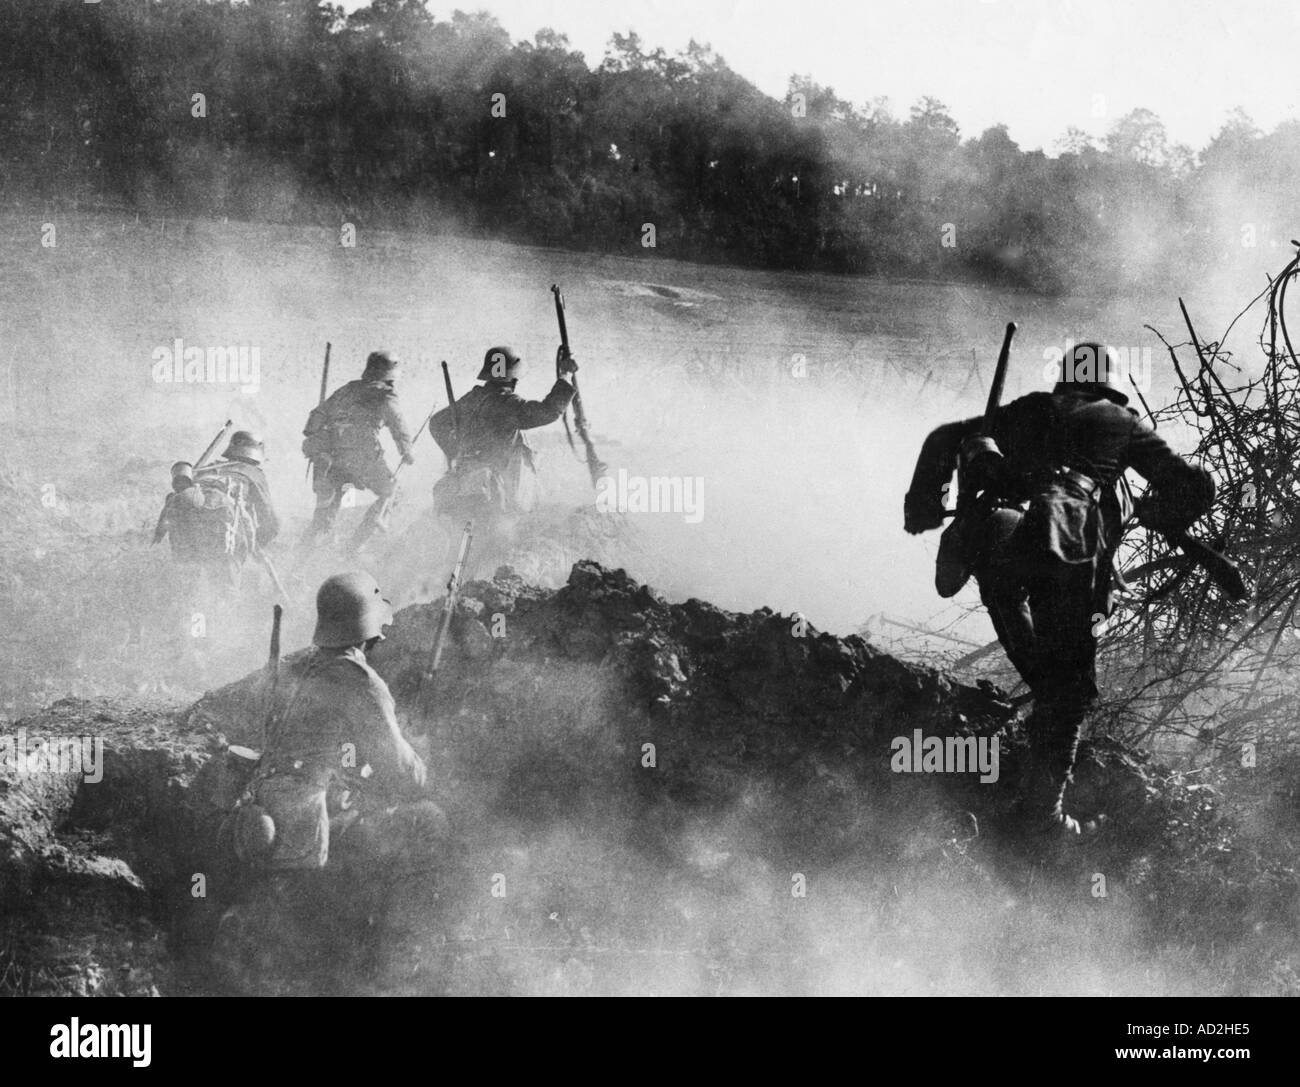 WWI German infantry assault on the Western Front 1918 They are wearing the steel helmets which had replaced the early Pickelha - Stock Image